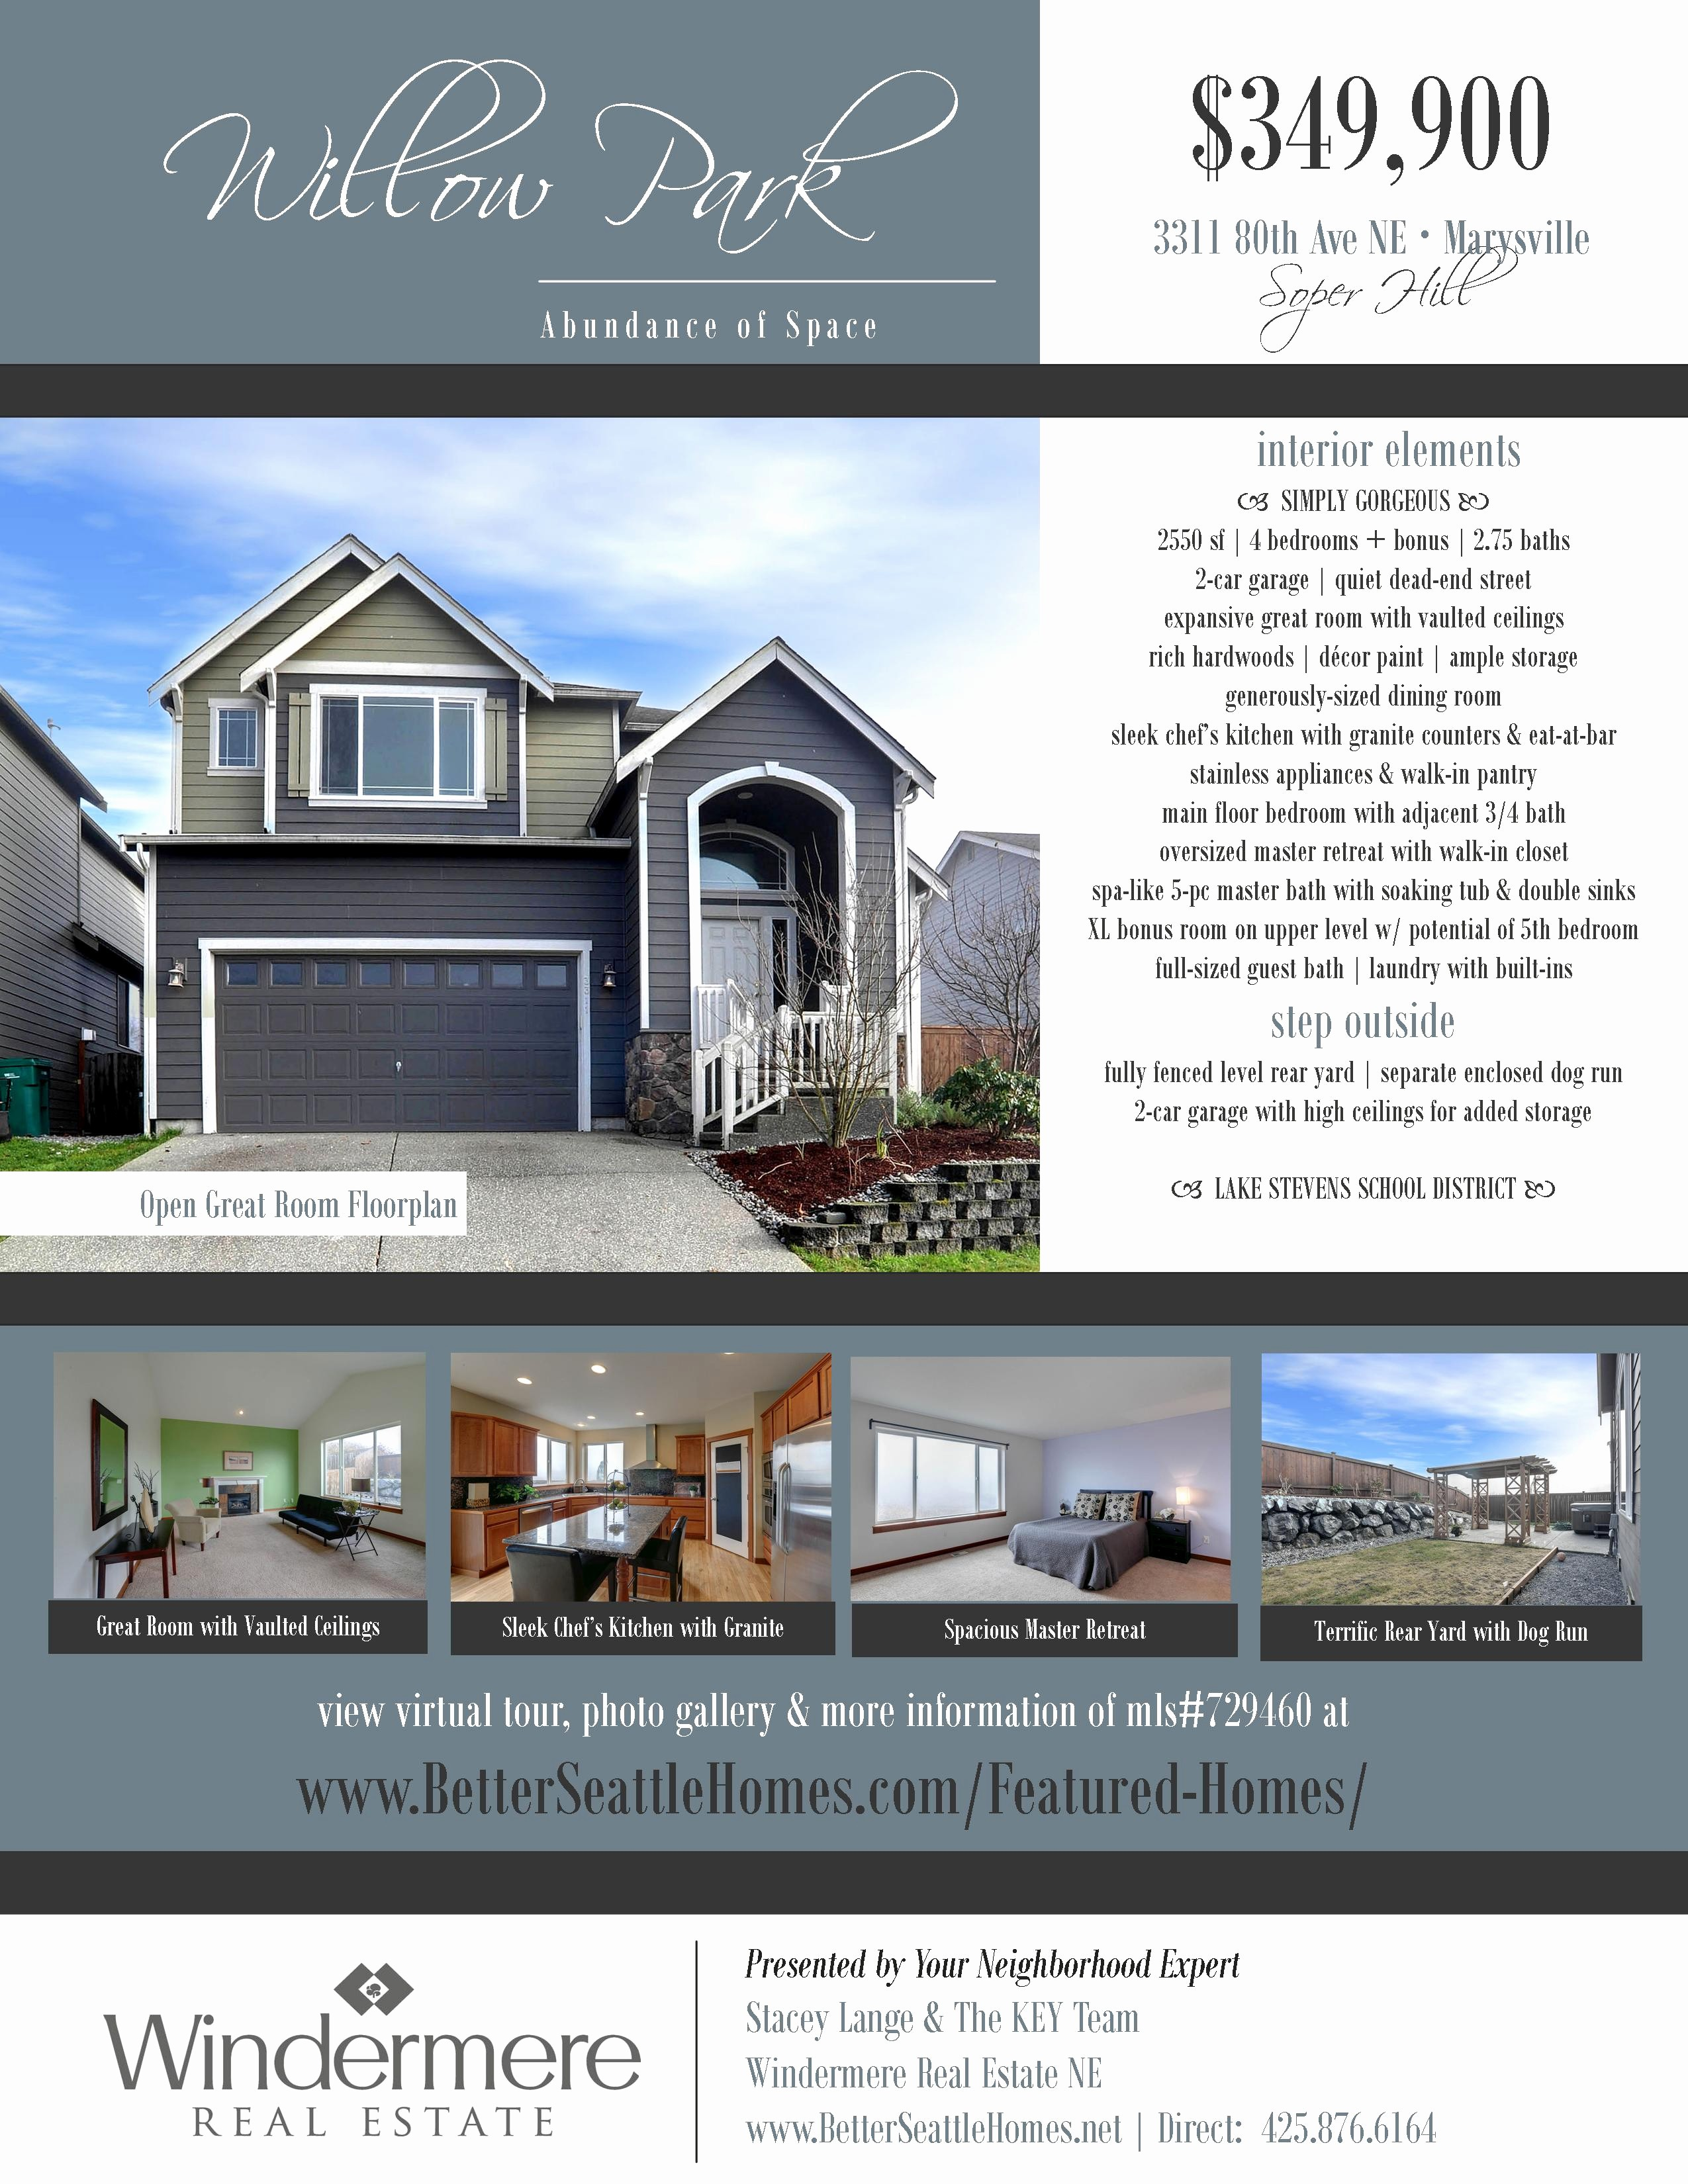 Home for Sale Flyer Templates Lovely 13 Real Estate Flyer Templates Excel Pdf formats